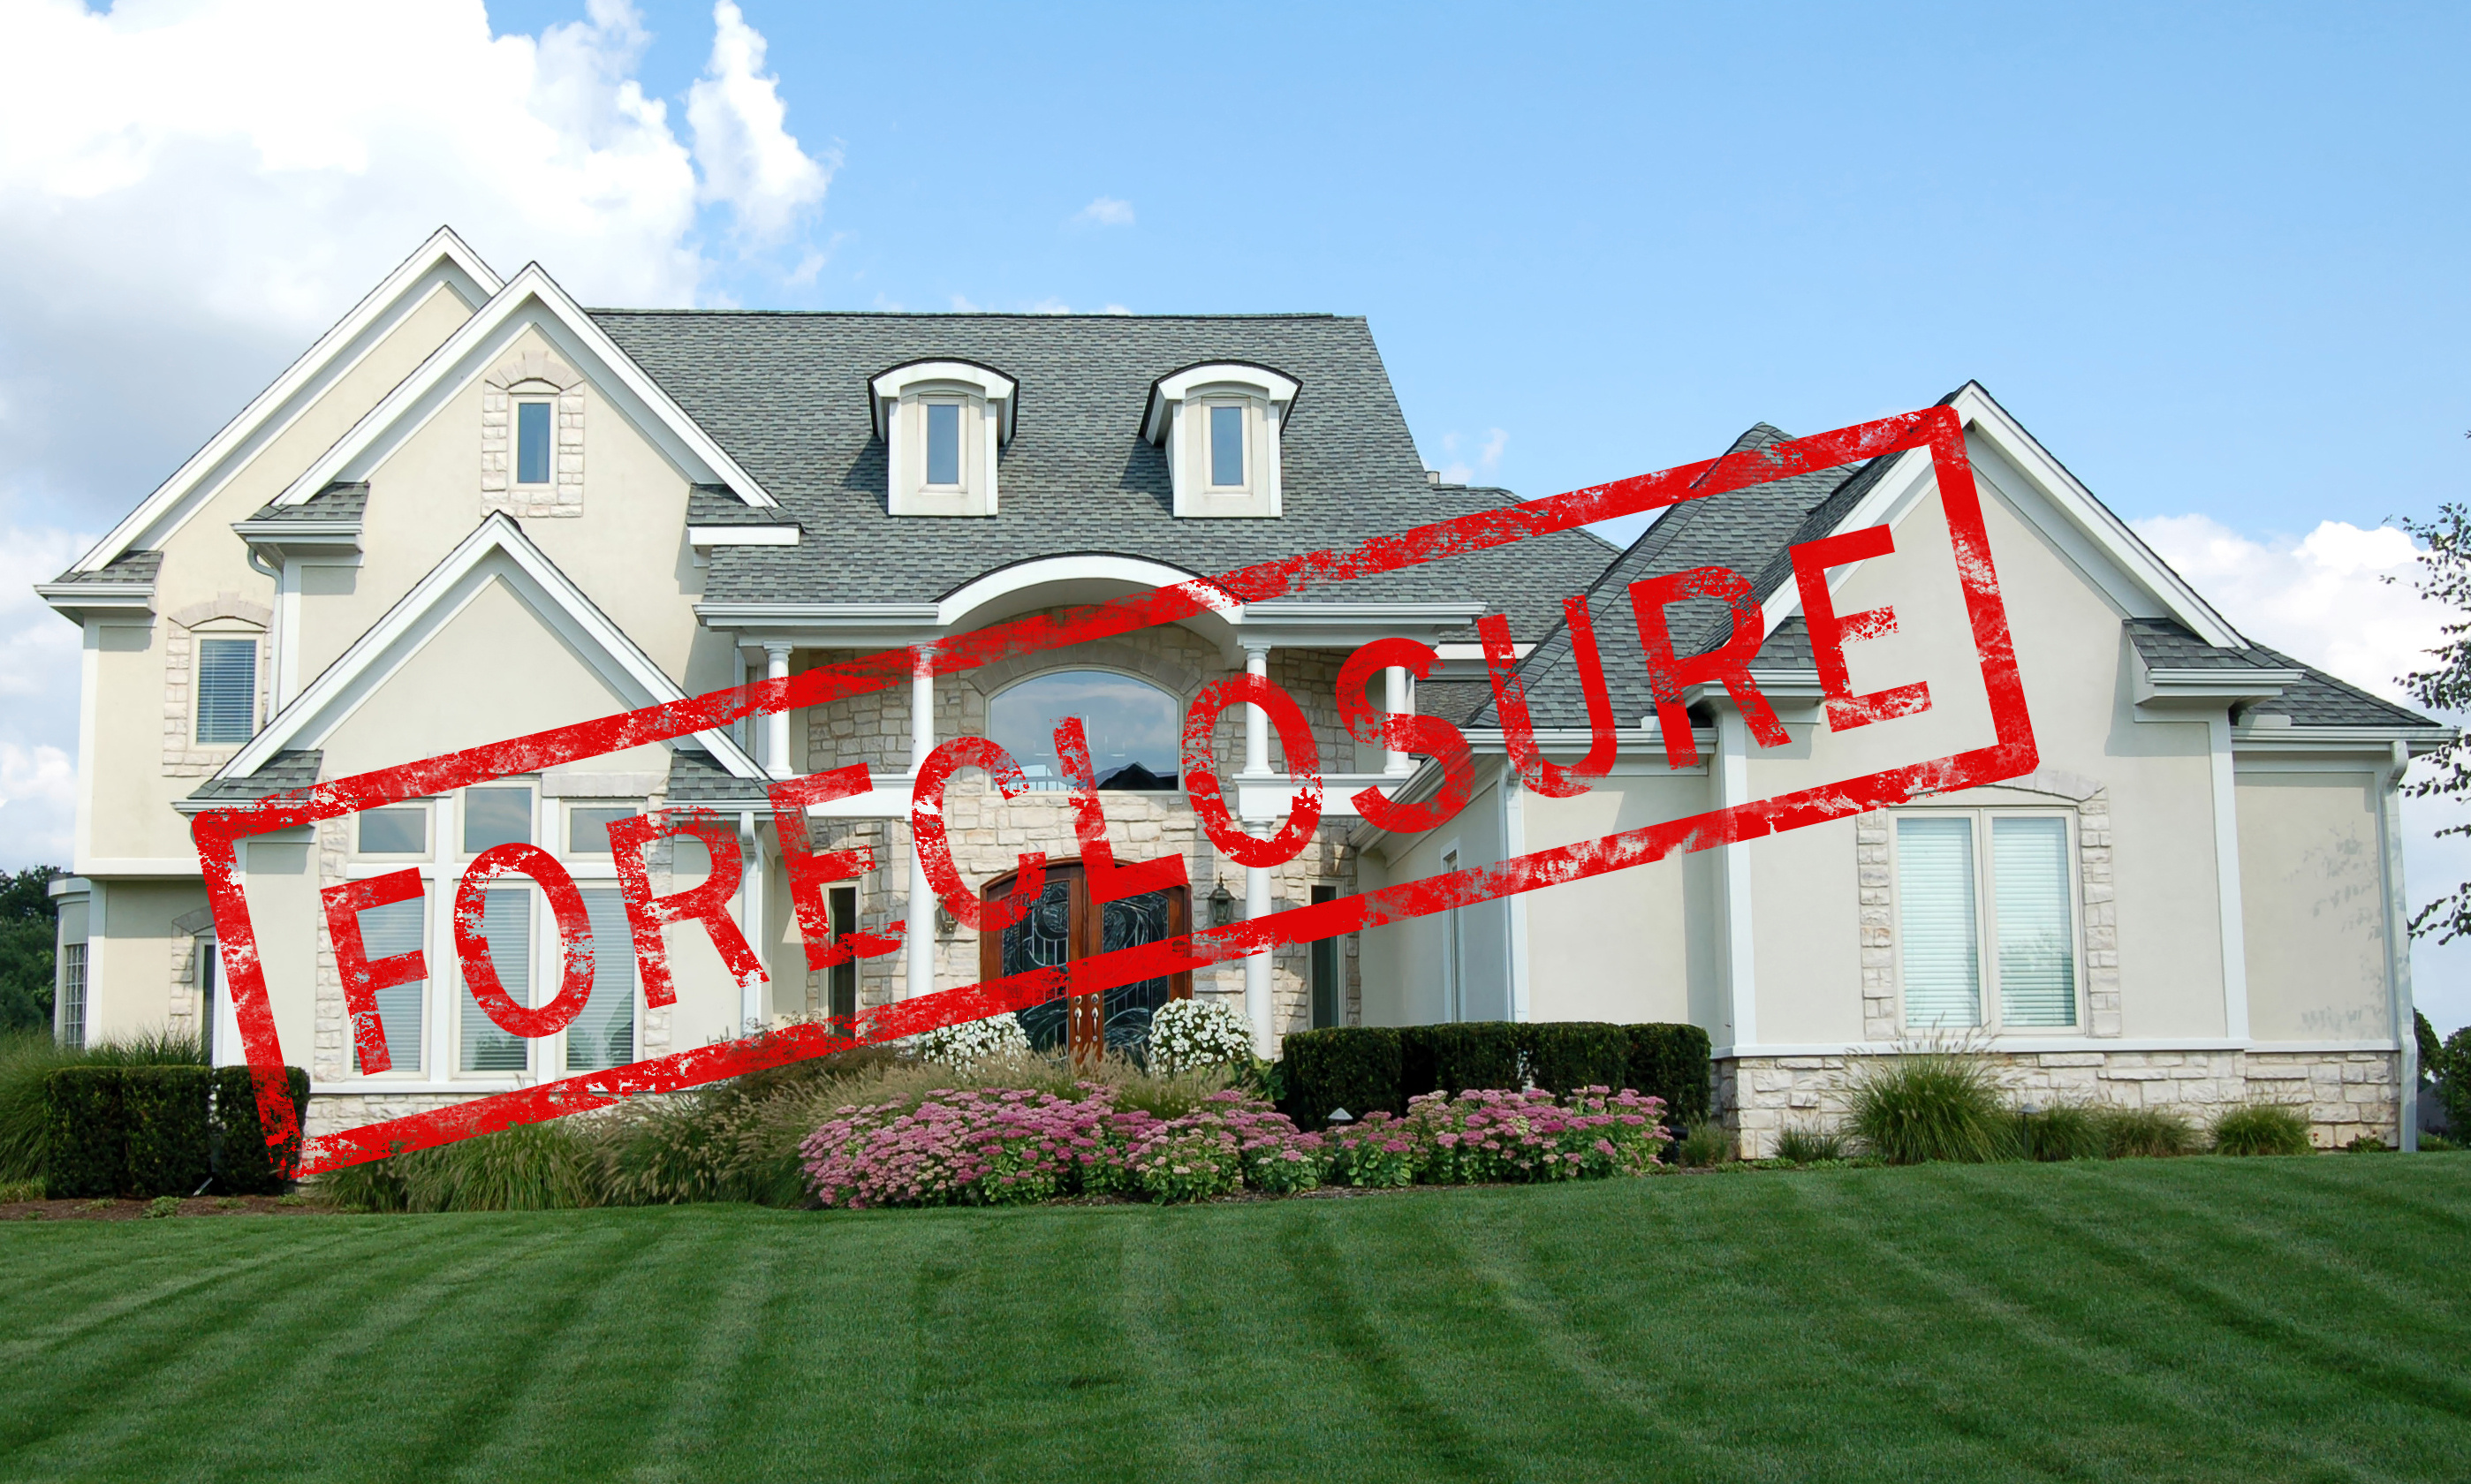 Foreclosure House For Appraisal